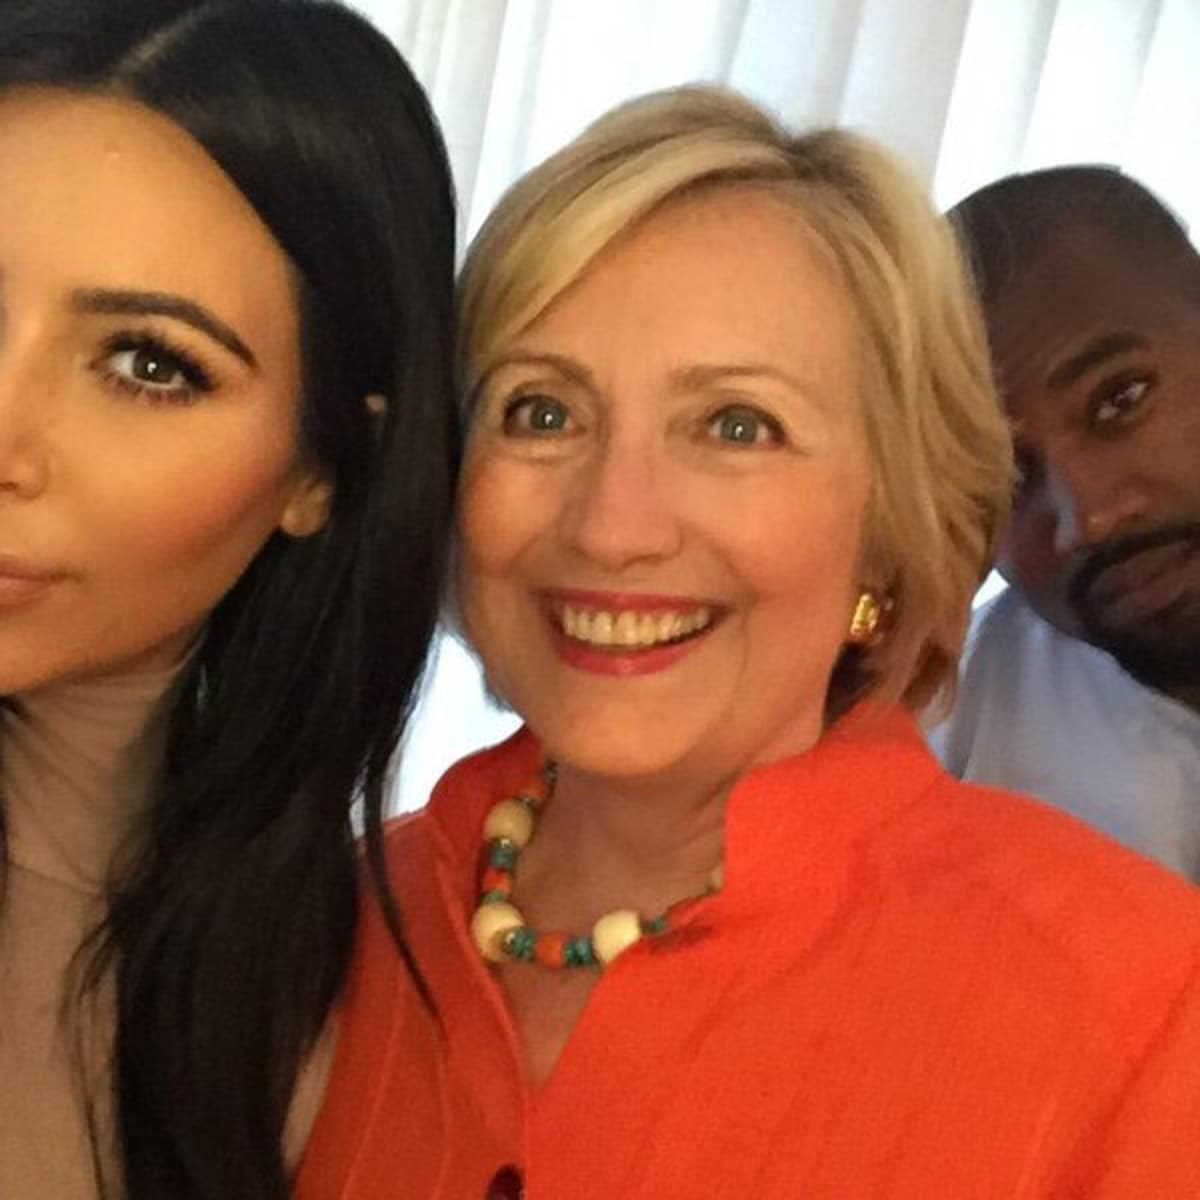 Kim Kardashian, Hillary Clinton, and Kanye West